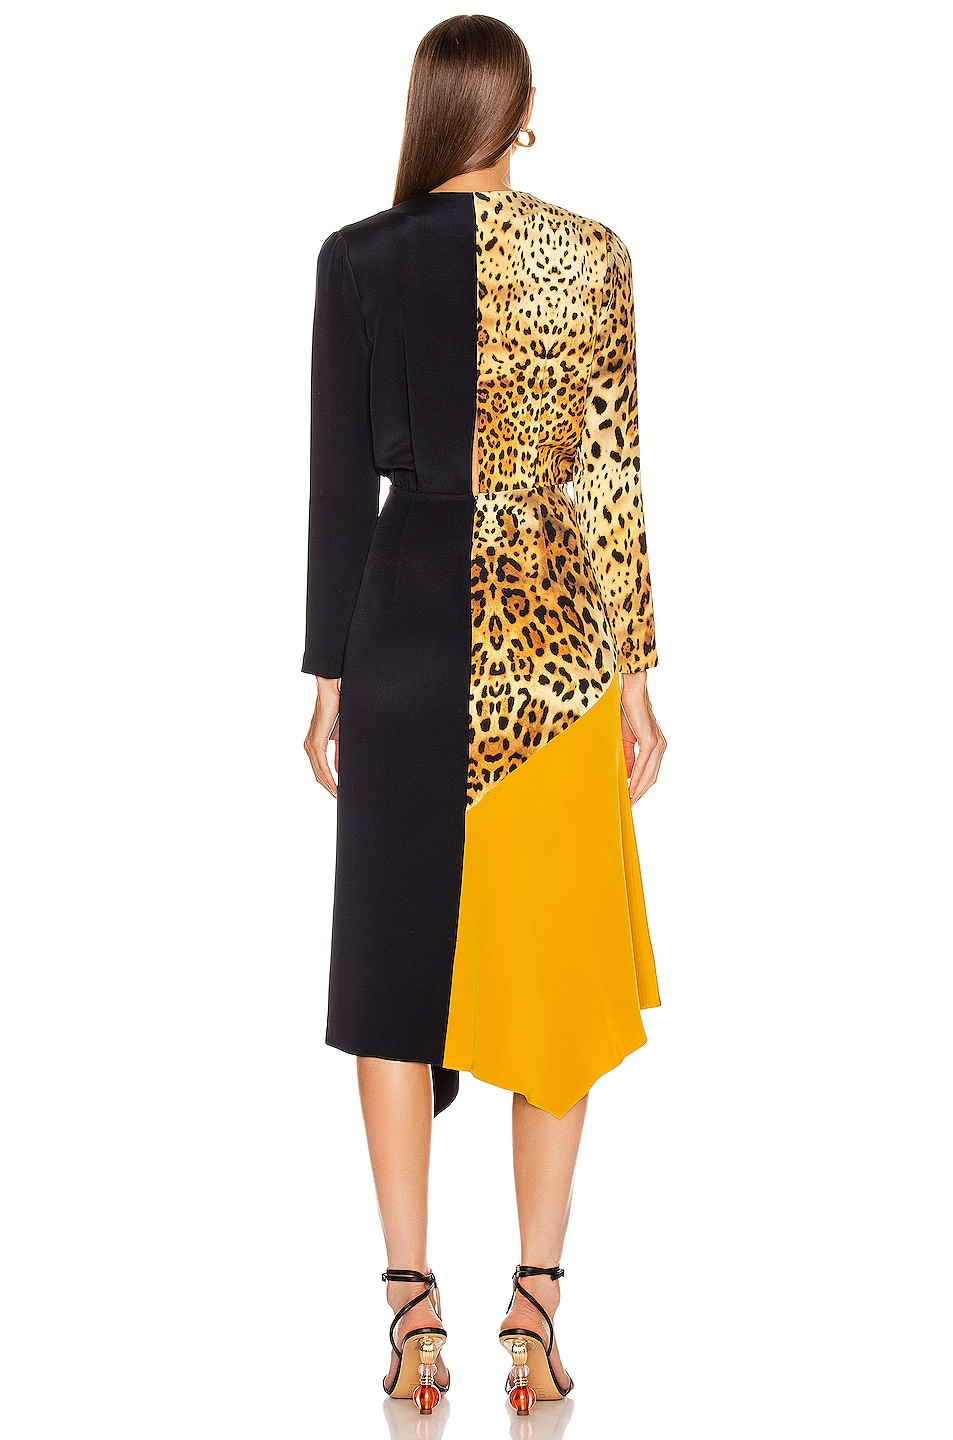 Image 4 of Cushnie Color Block Long Sleeve Dress in Tan Leopard, Navy & Antique Gold